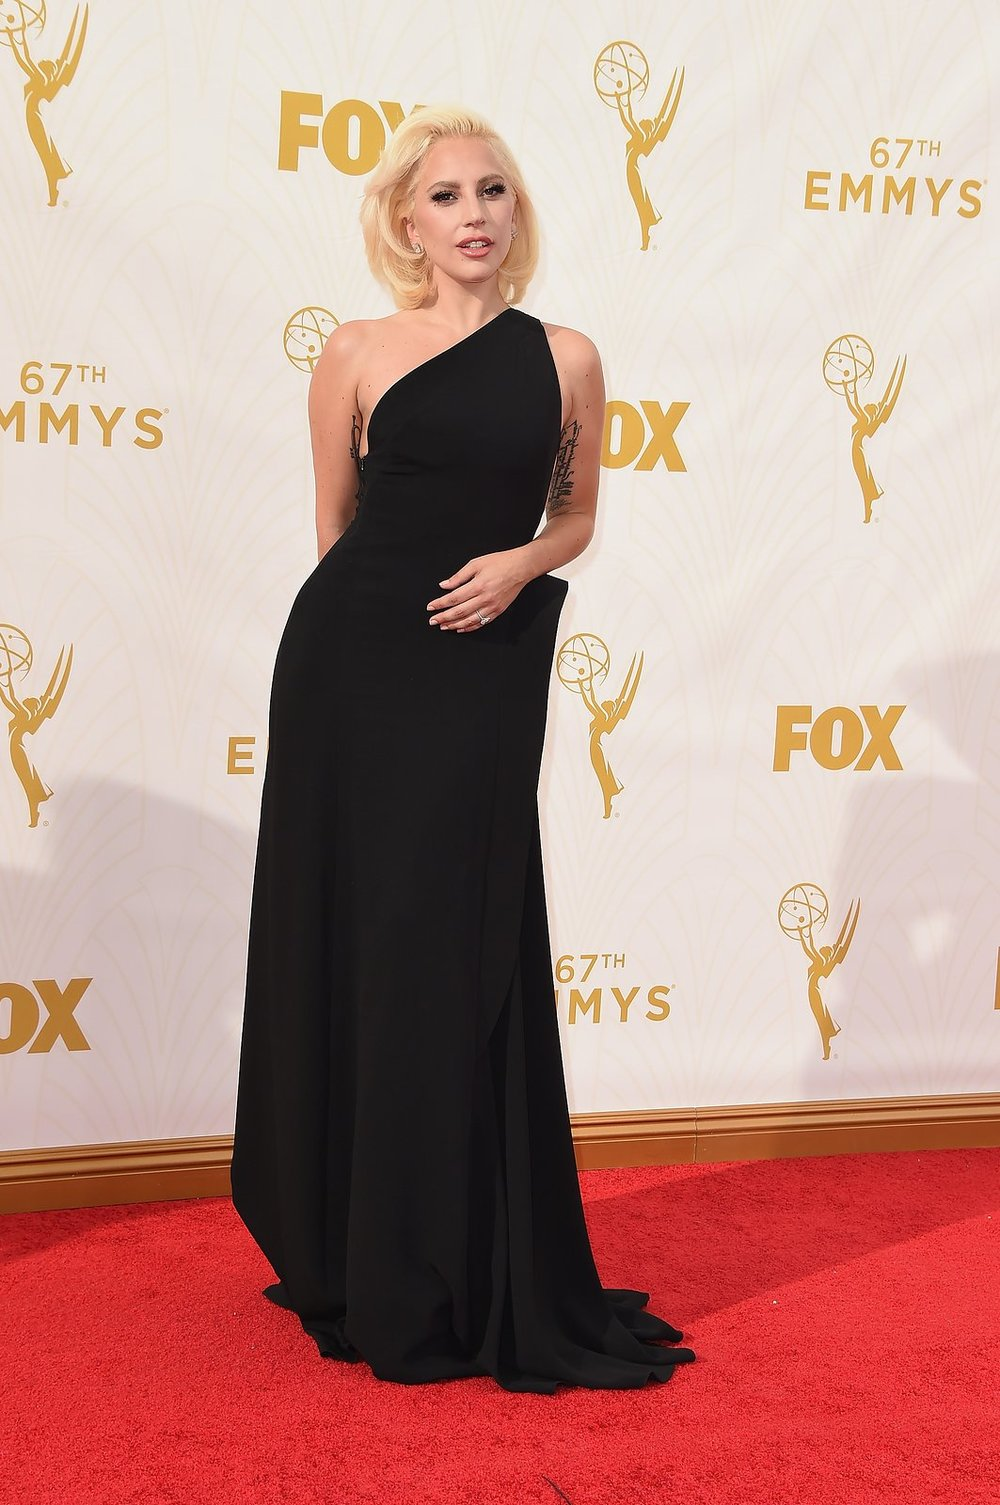 lady-gaga-emmys-red-carpet-2015.jpg